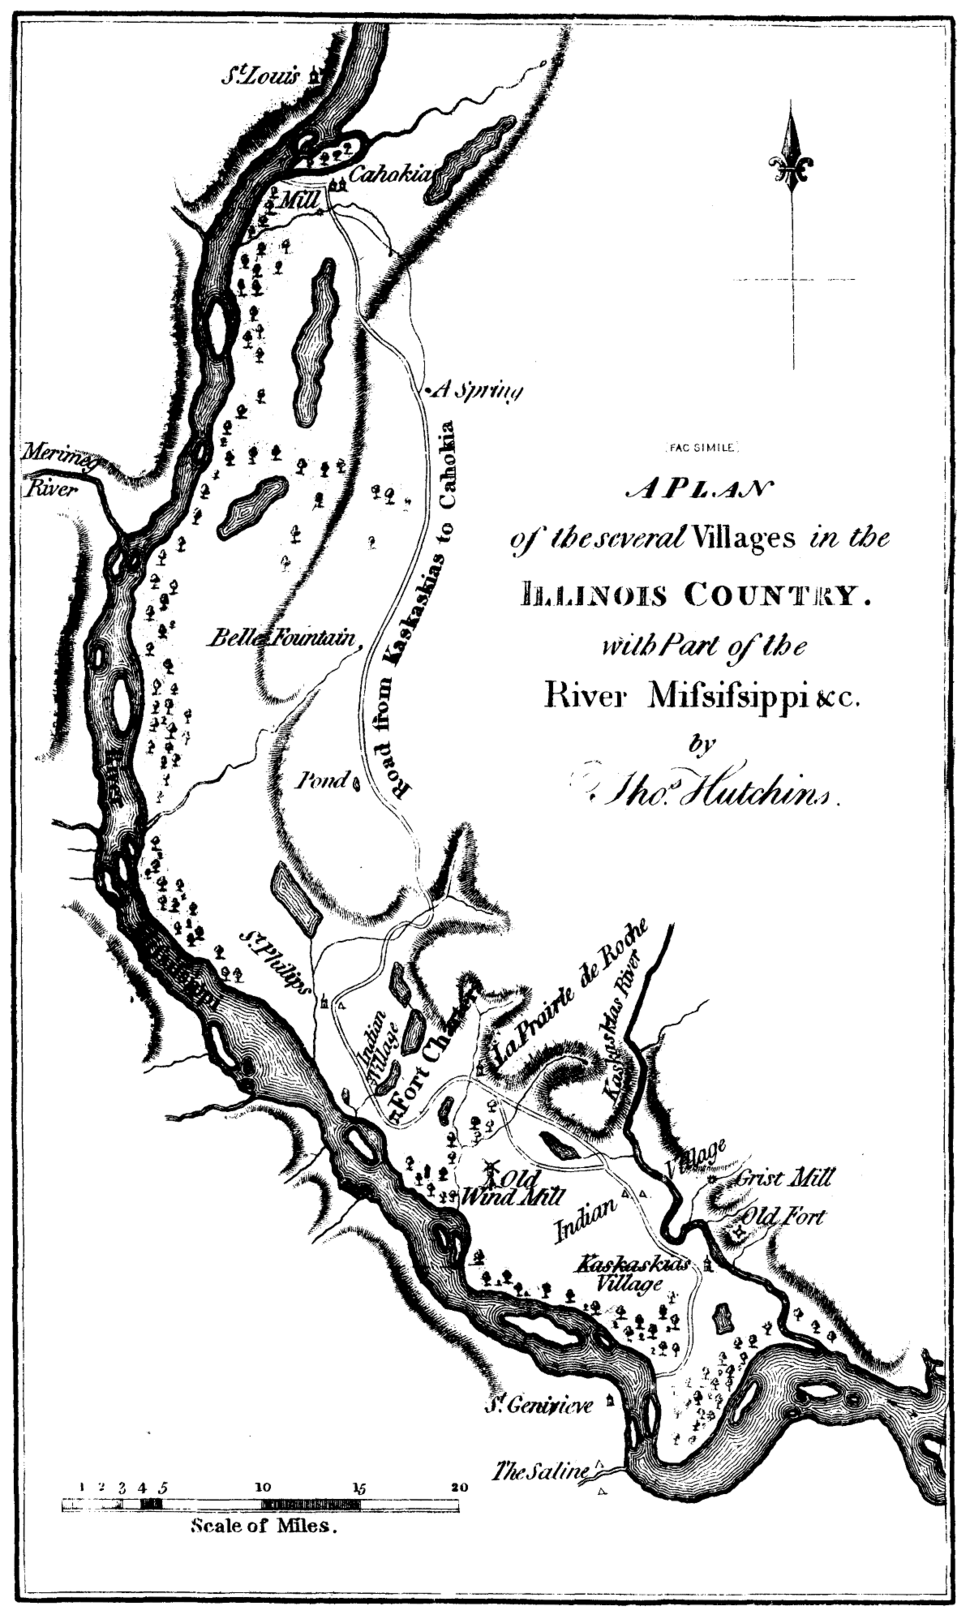 A plan of the several villages in the illinois country